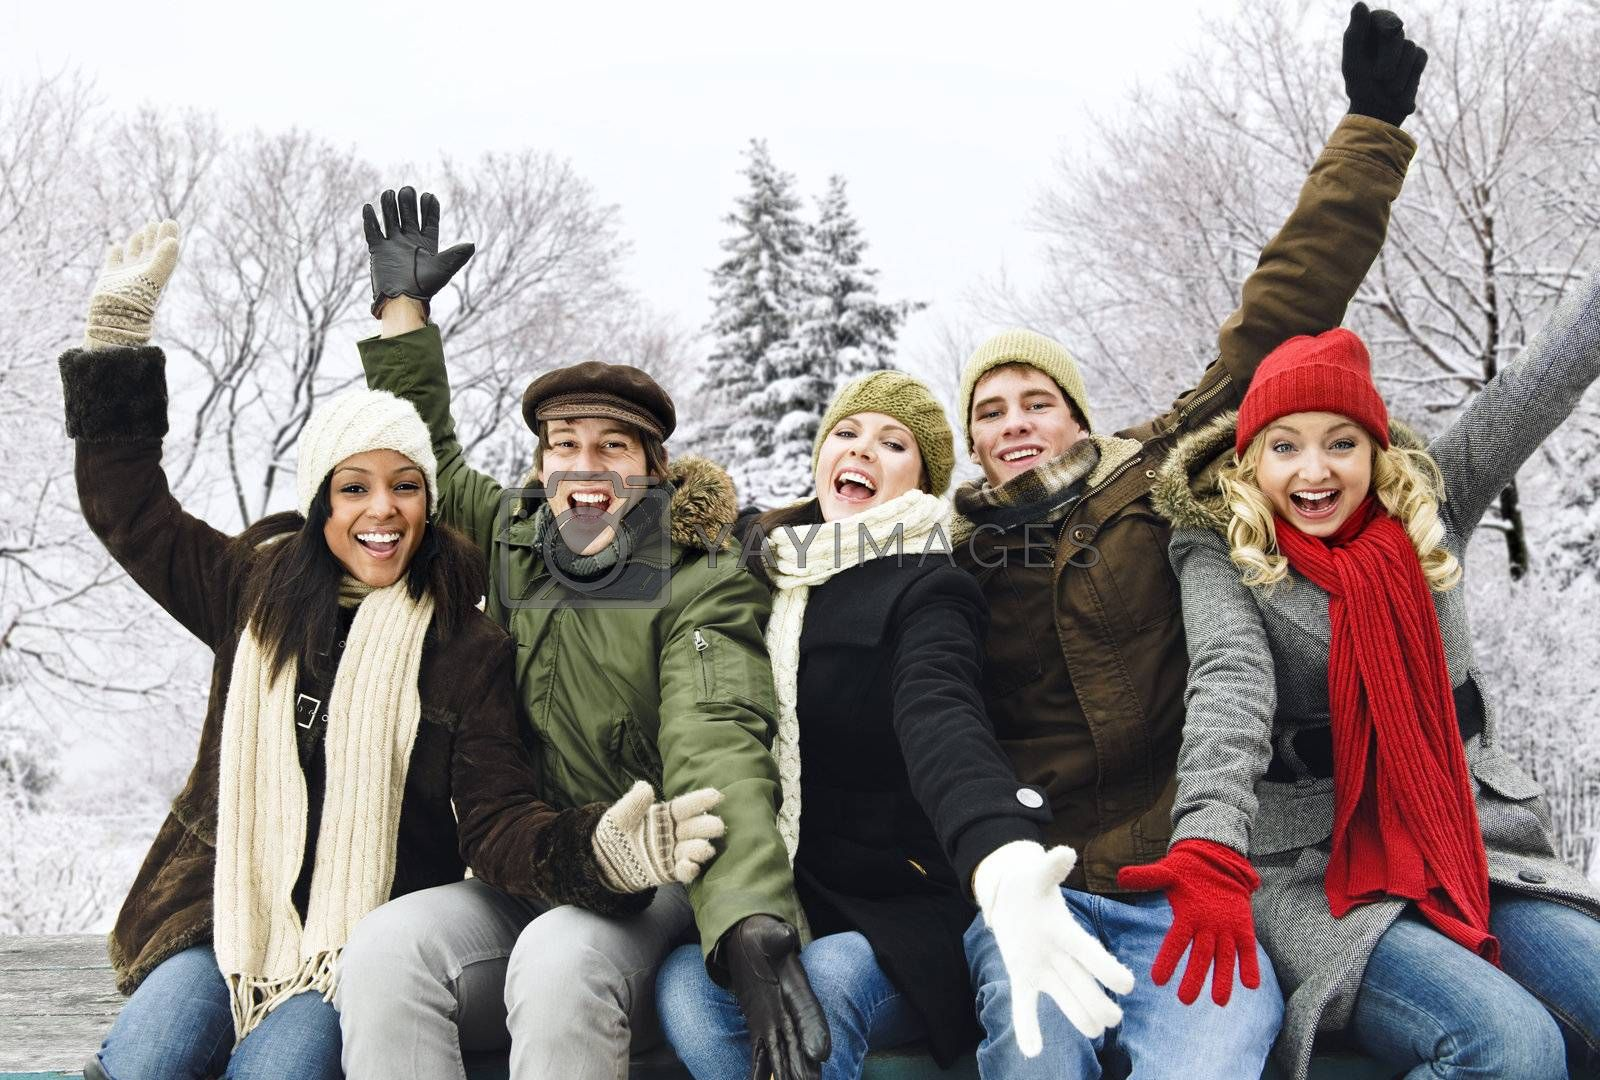 Group of excited young friends with arms raised outdoors in winter